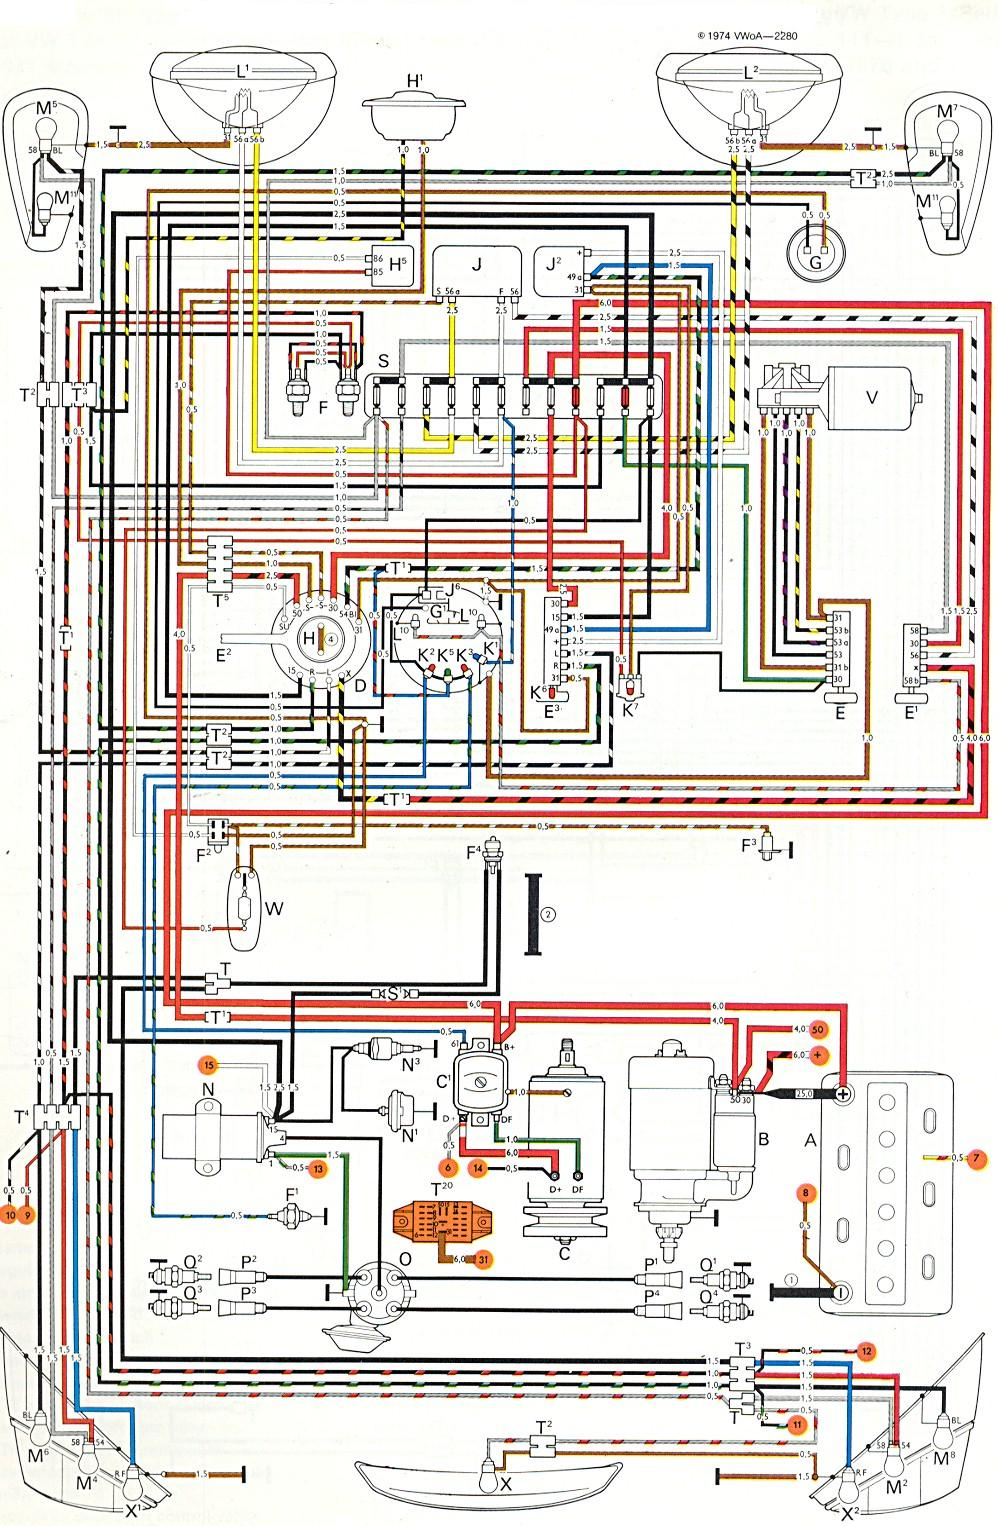 1974 Vw Alternator Wiring Diagram Hub Together With Fuel System On Of Maruti Generator Automotive Diagrams Basic